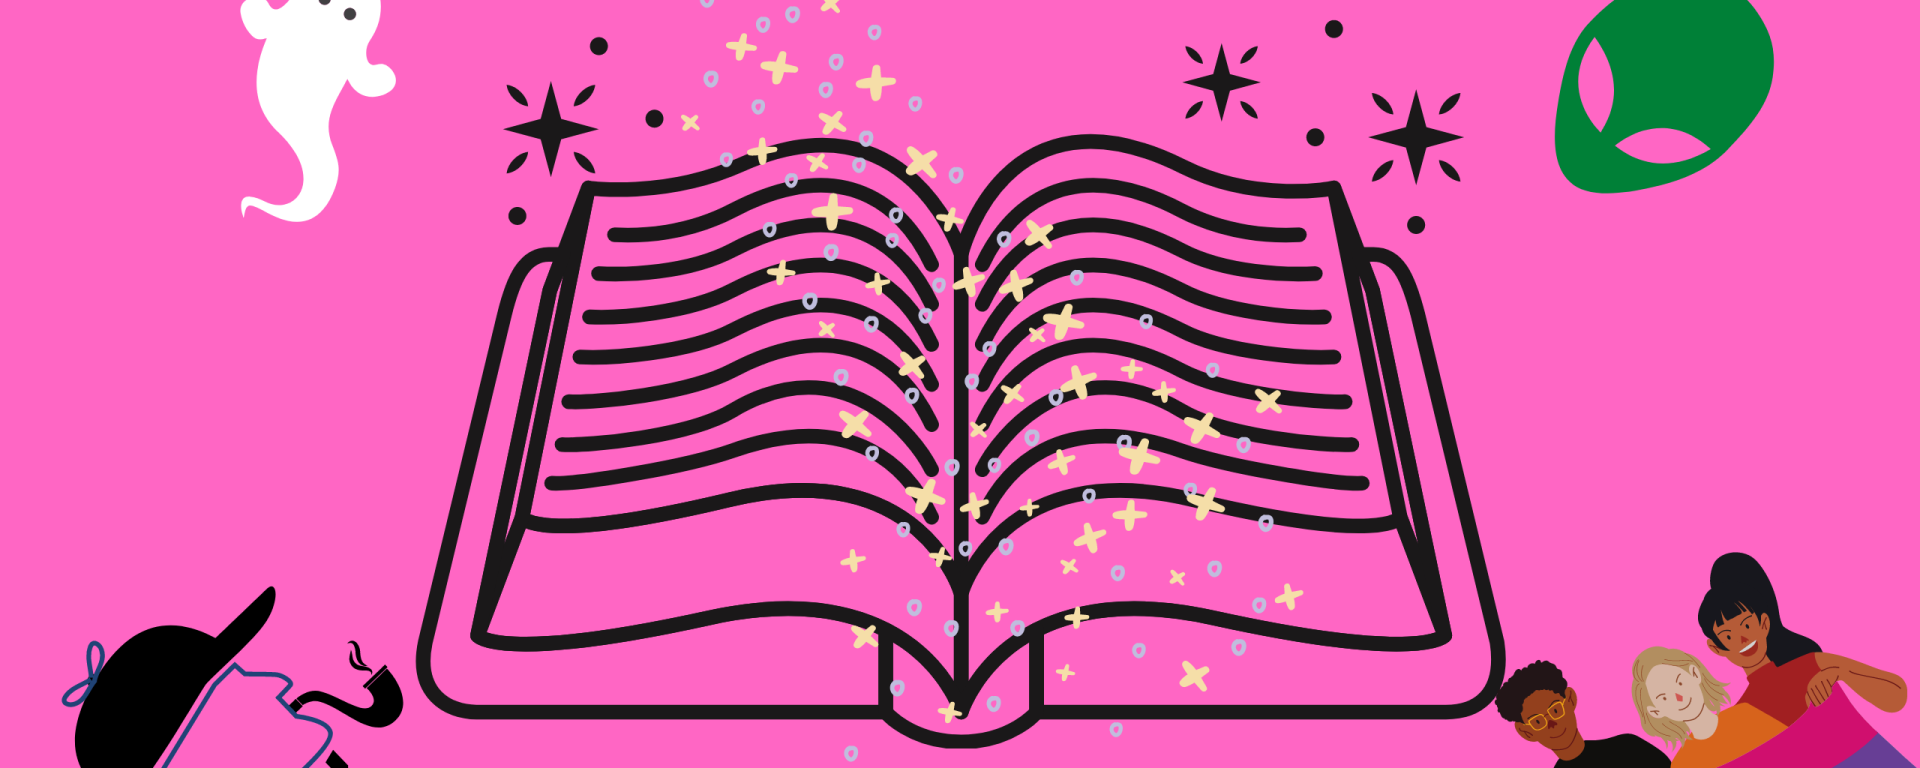 Image of pink background with book in center and sparkles coming from the center with smaller pictures surrounding.